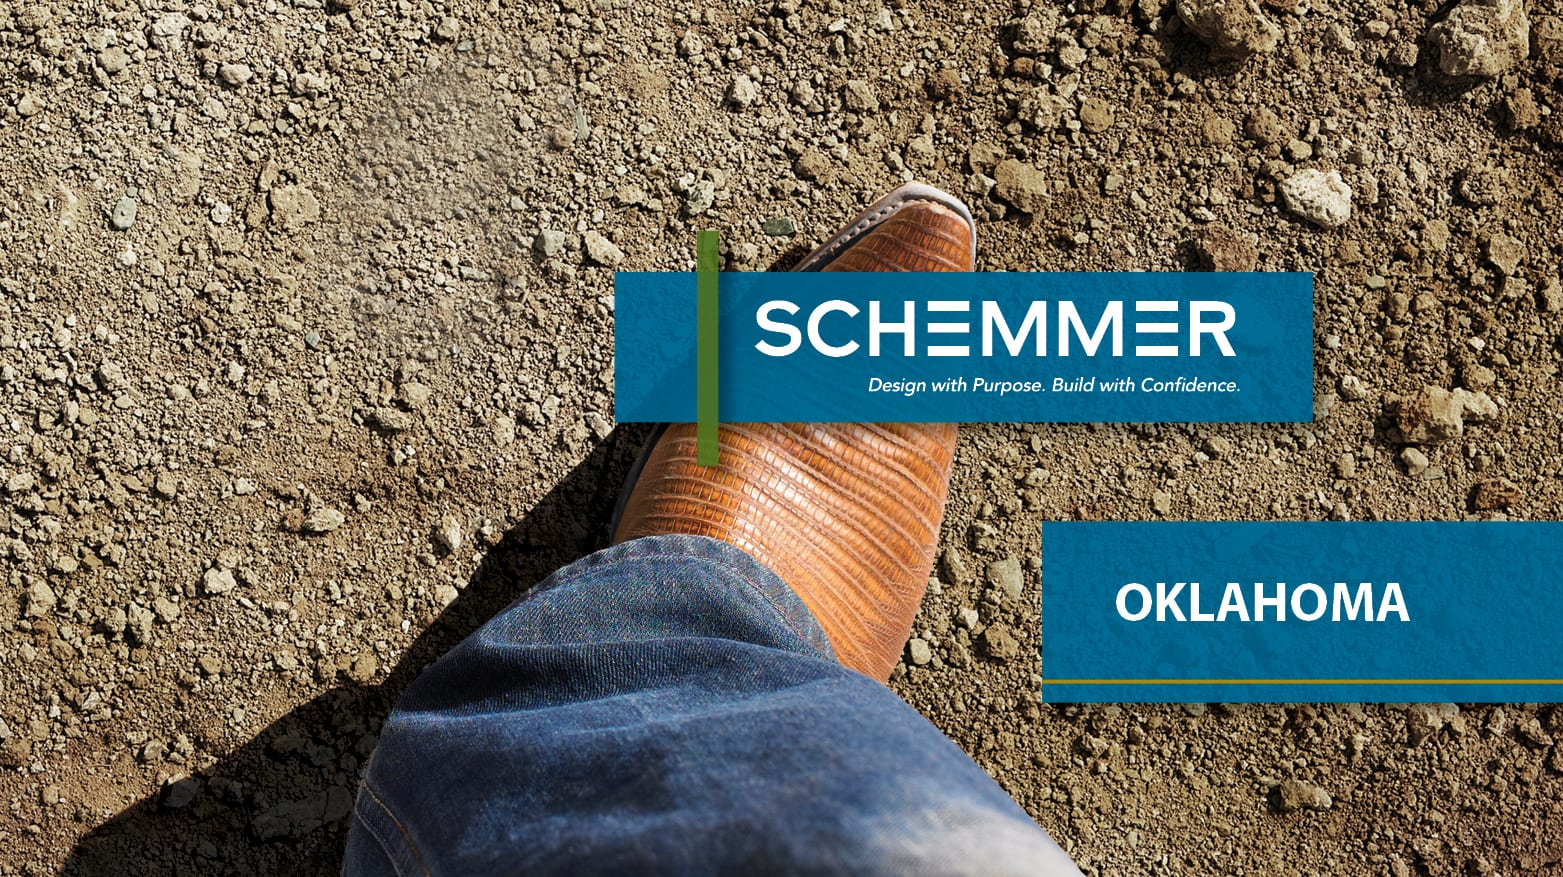 Schemmer Providing Civil Engineering and Surveying Solutions in Oklahoma